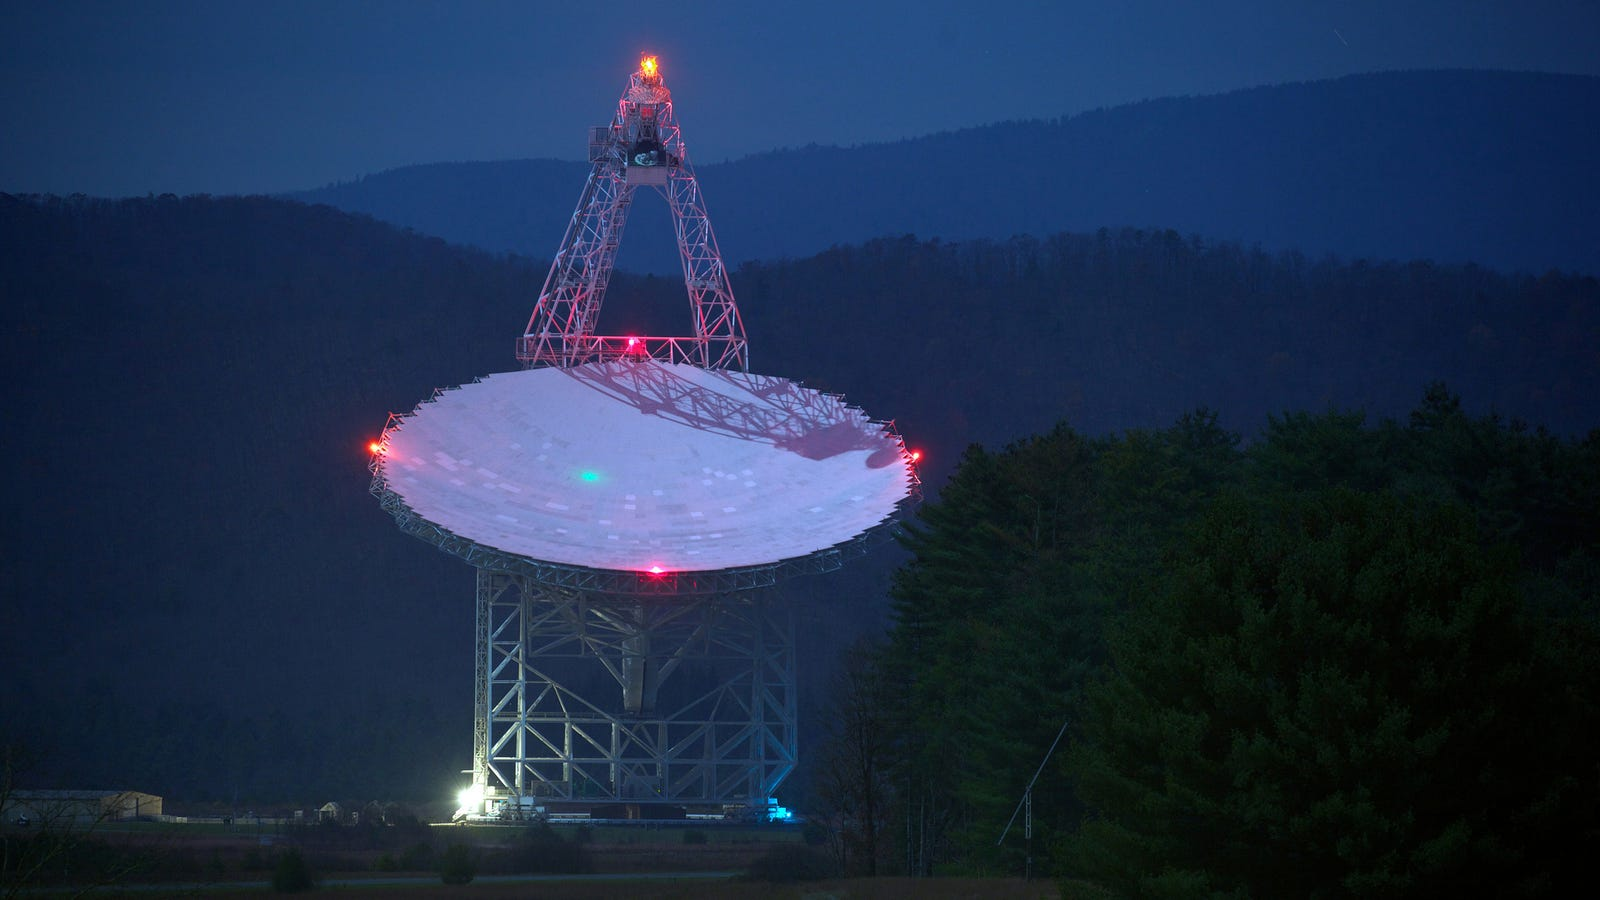 This Might Be Our Best Shot at Finding That 'Alien Megastructure'